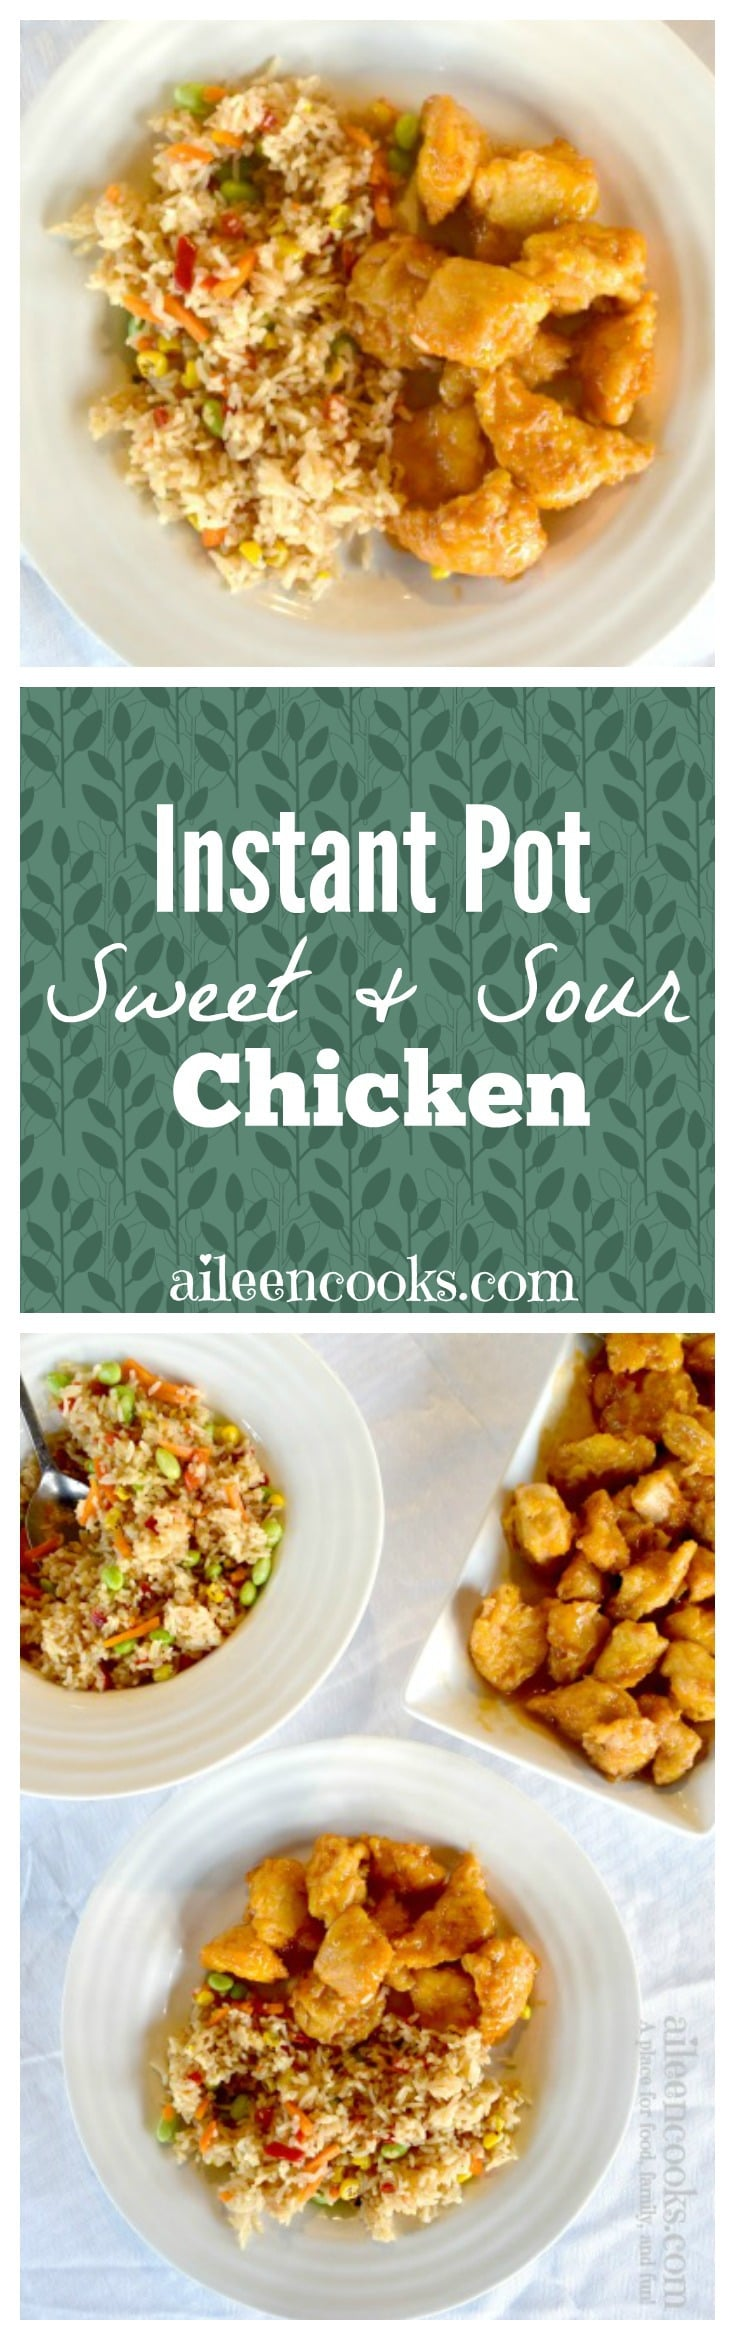 Enjoy delicious Chinese food at home with this recipe for Instant Pot Sweet and Sour Chicken. This recipe tastes just like take-out and it's ready just as fast, thanks to your handy pressure cooker.